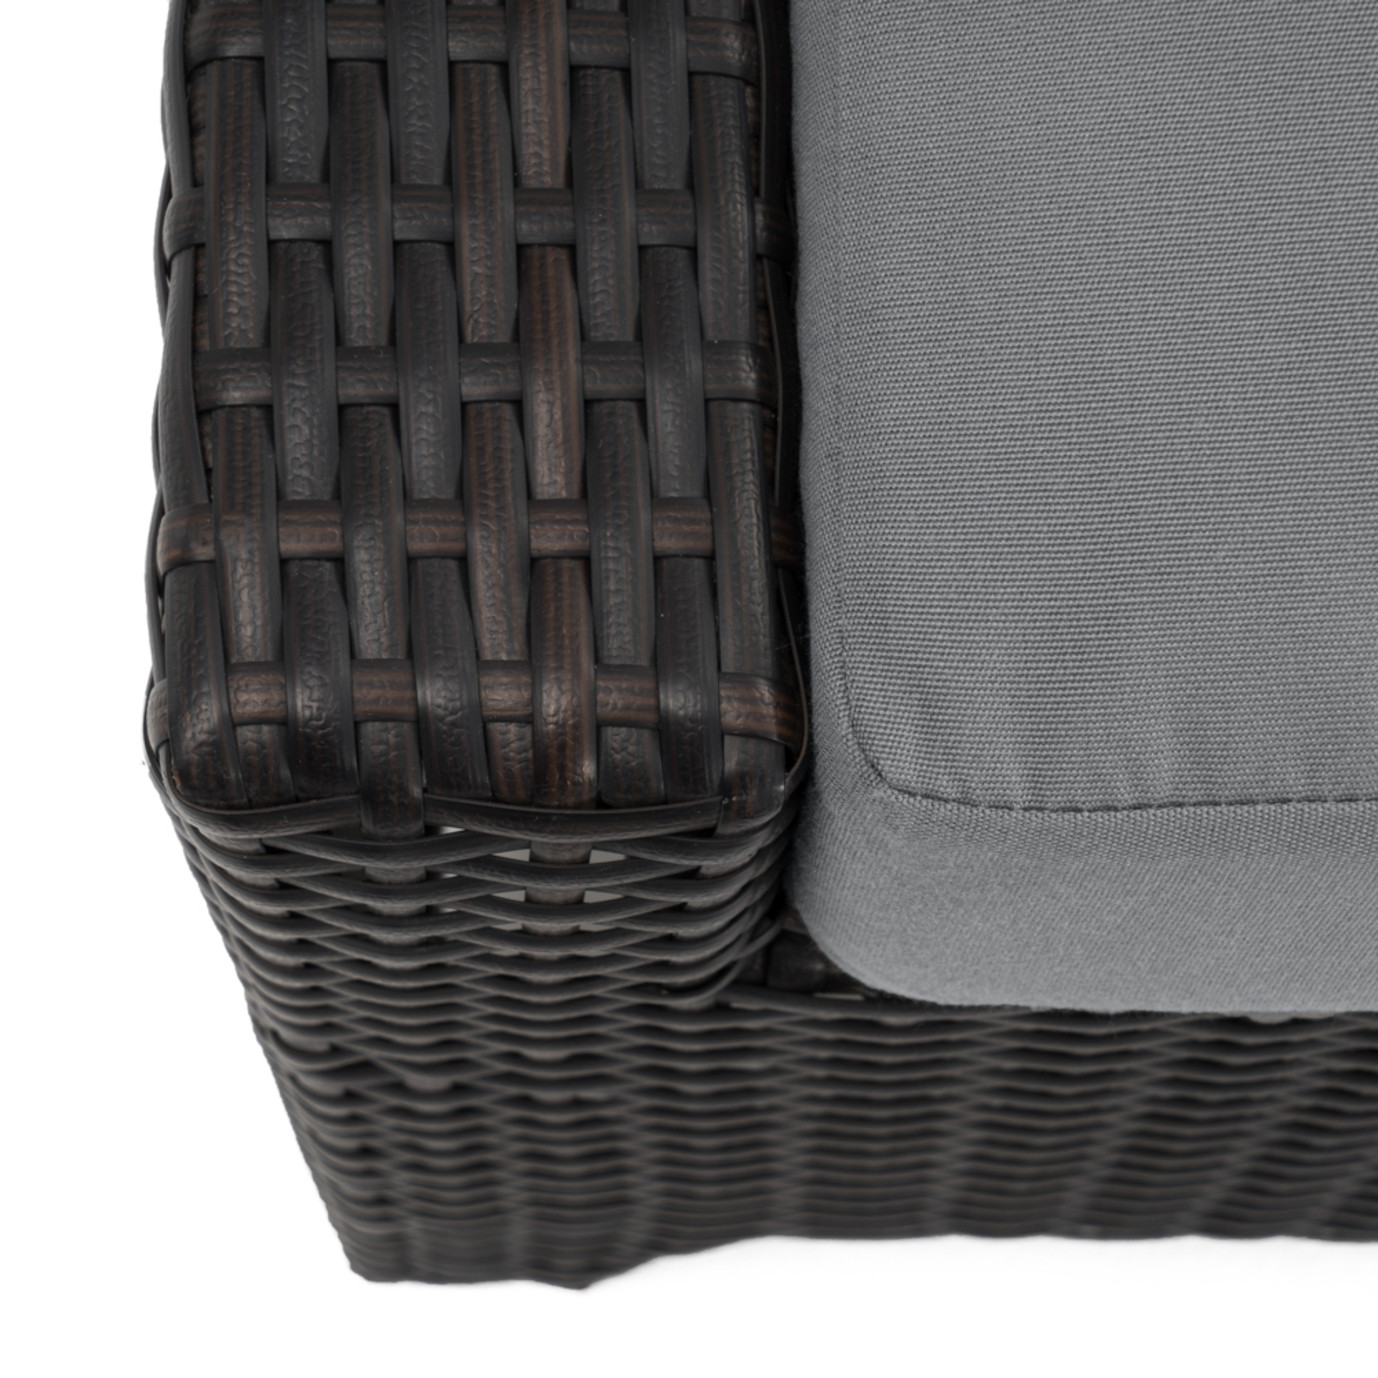 Deco™ Club Ottomans - Charcoal Gray